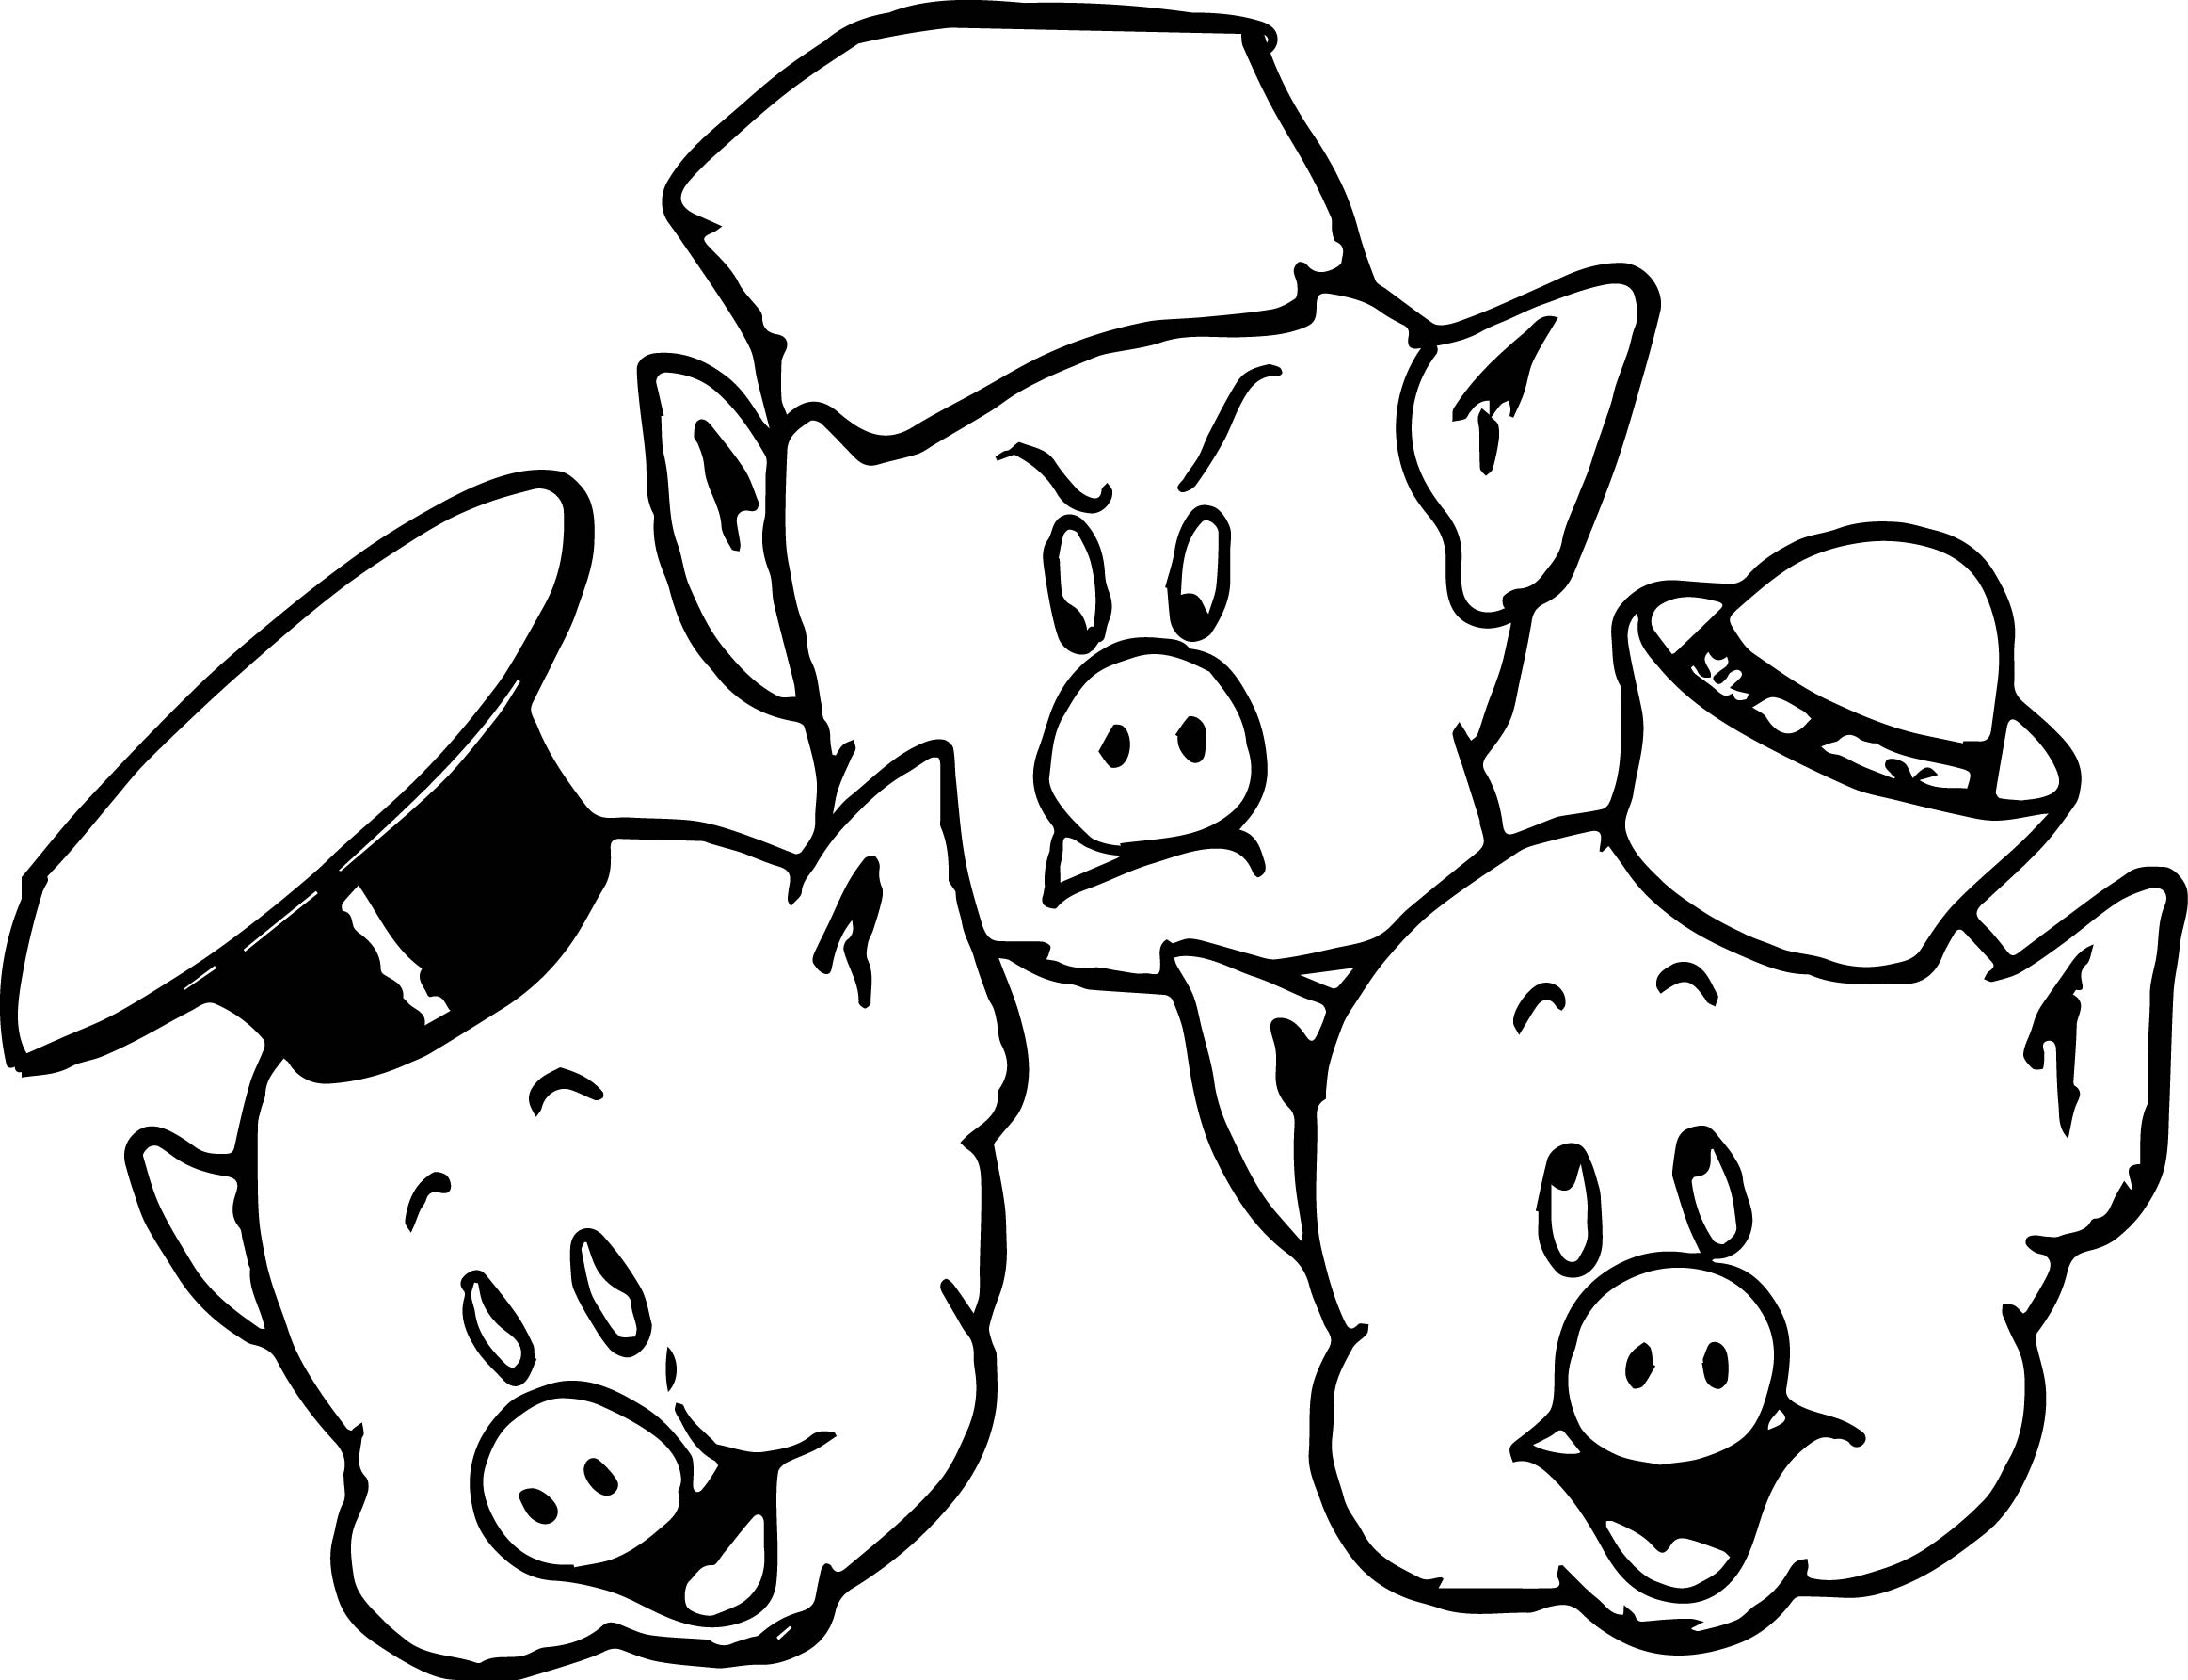 Pig face 3 little pigs face coloring page wecoloringpage.